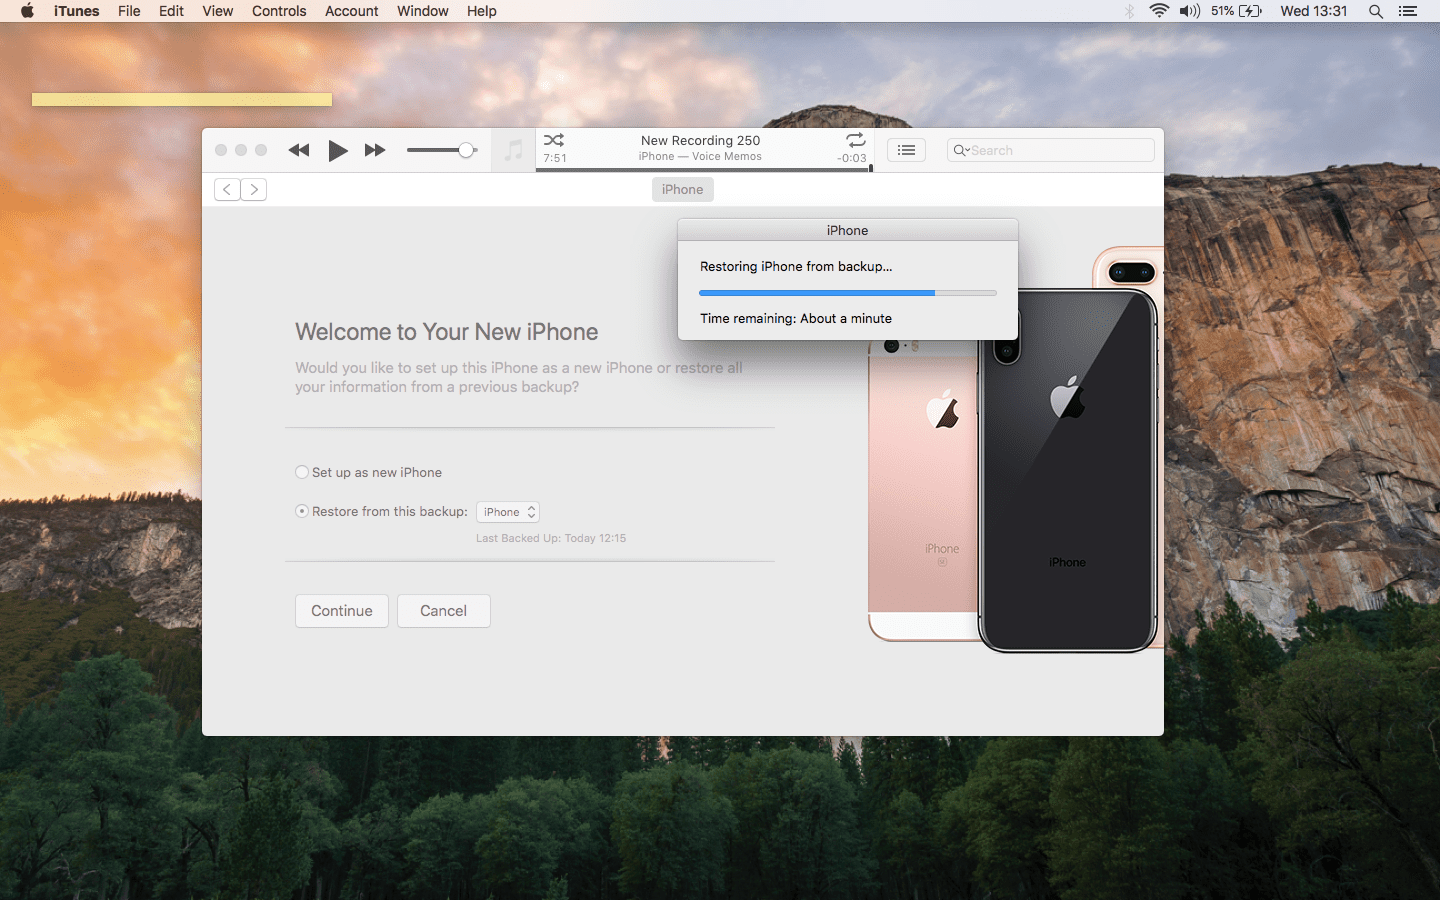 Restoring the iPhone